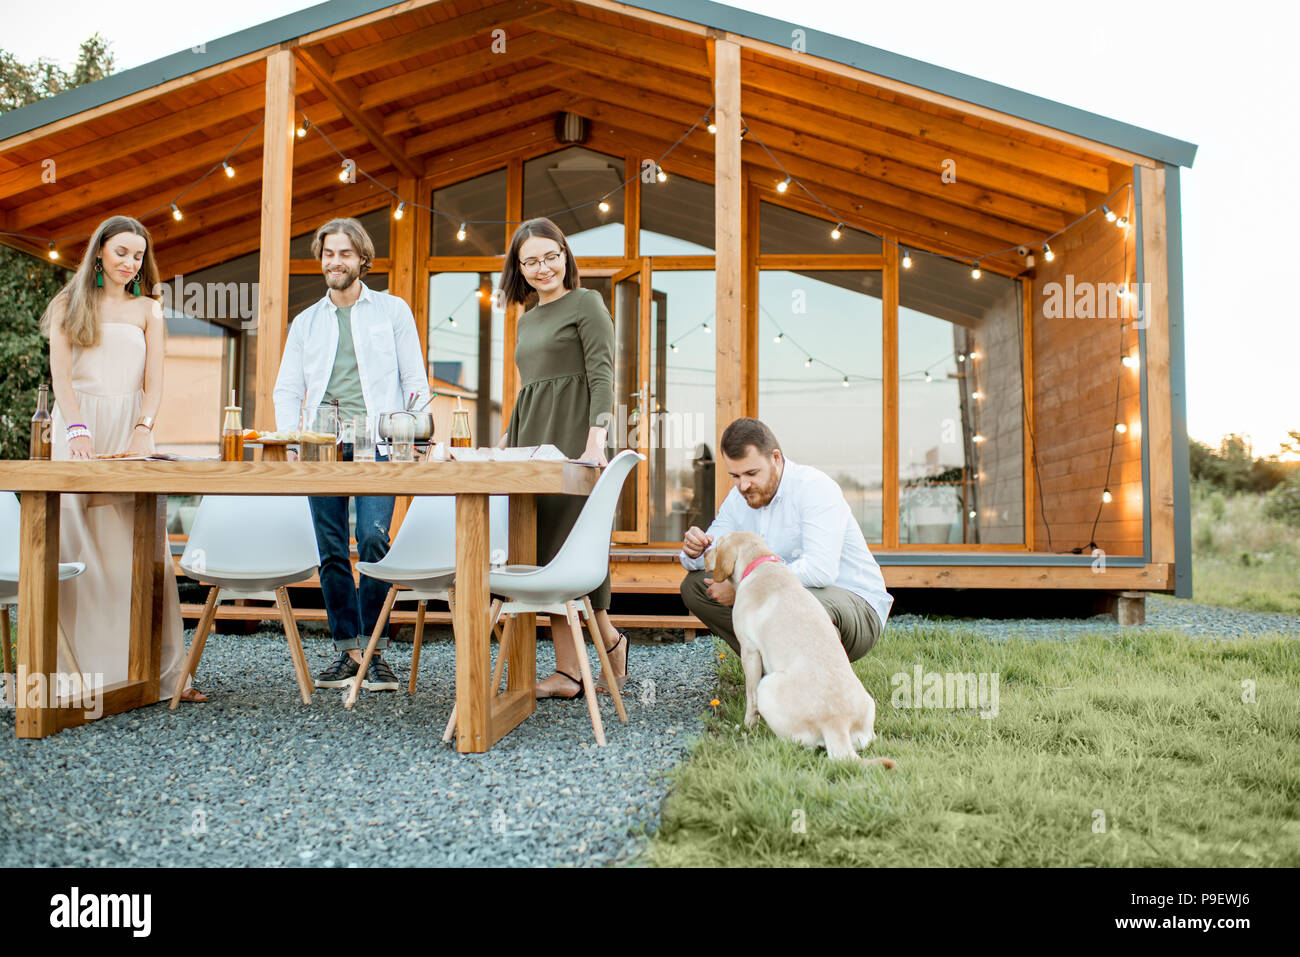 Friends with dog on the backyard of the house - Stock Image